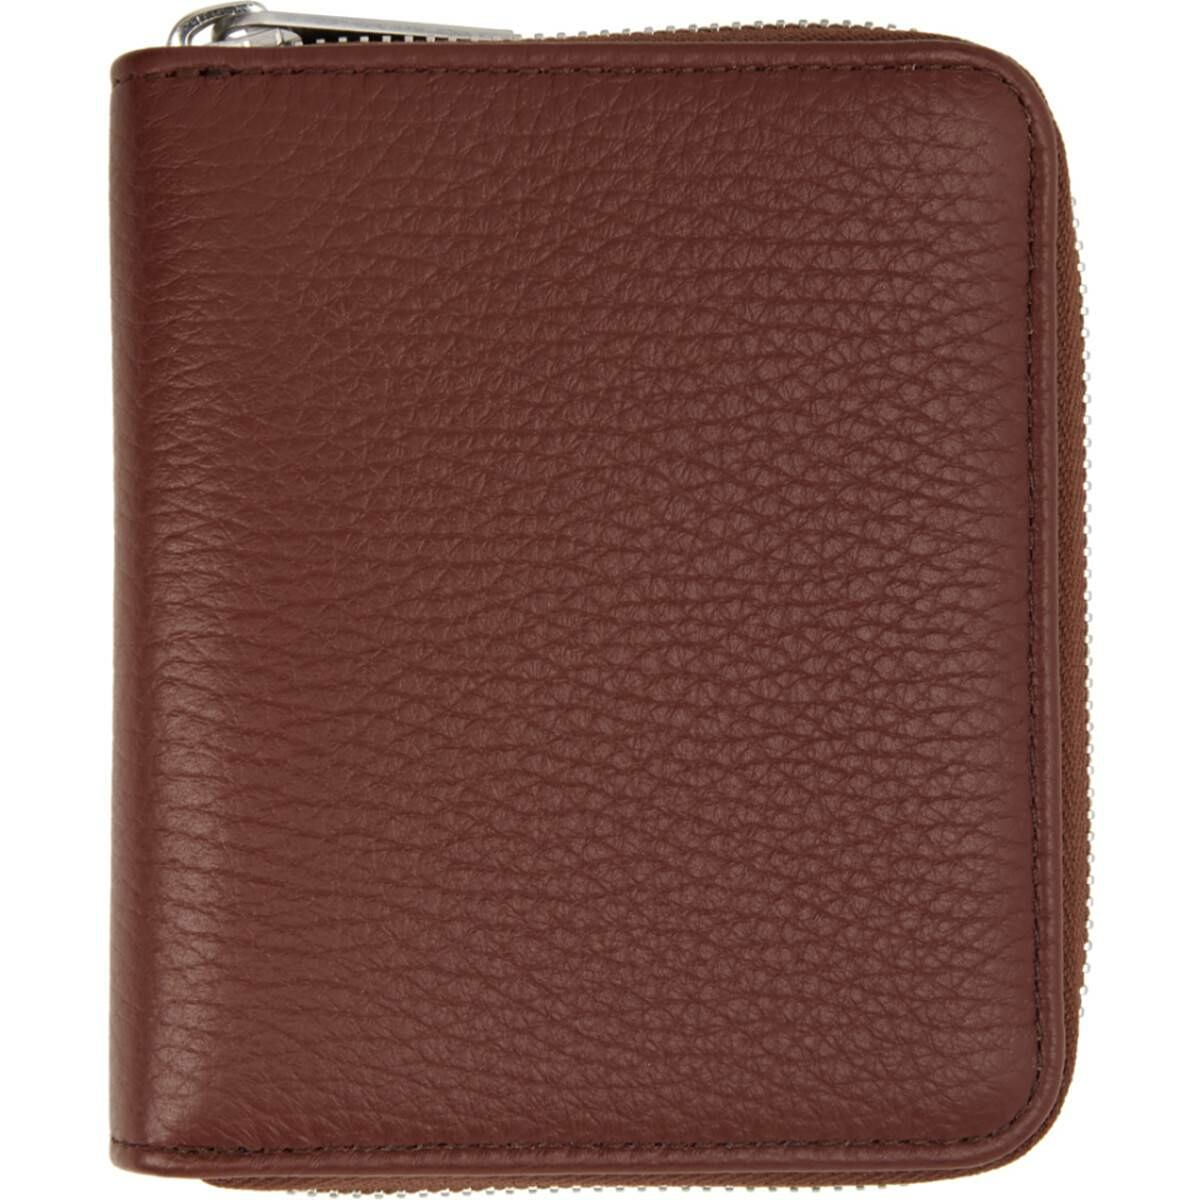 Maison Margiela Brown Leather Zip-Around Wallet Ssense USA MEN Men ACCESSORIES Mens WALLETS